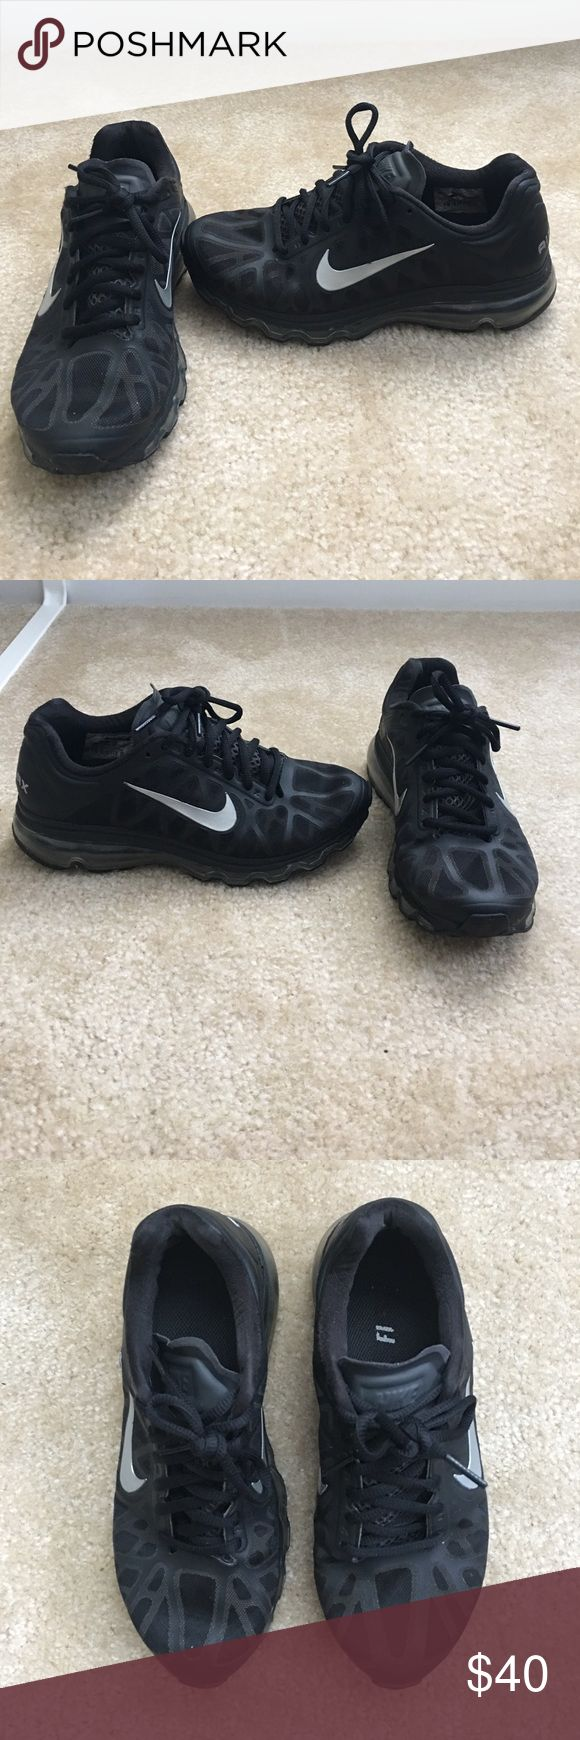 All black NIKE Airmax Shoes!! Women's Size 7. Absolutely love this pair. These were my favorite so I kept them in awesome condition!! LIKE NEW. Nike Shoes Athletic Shoes